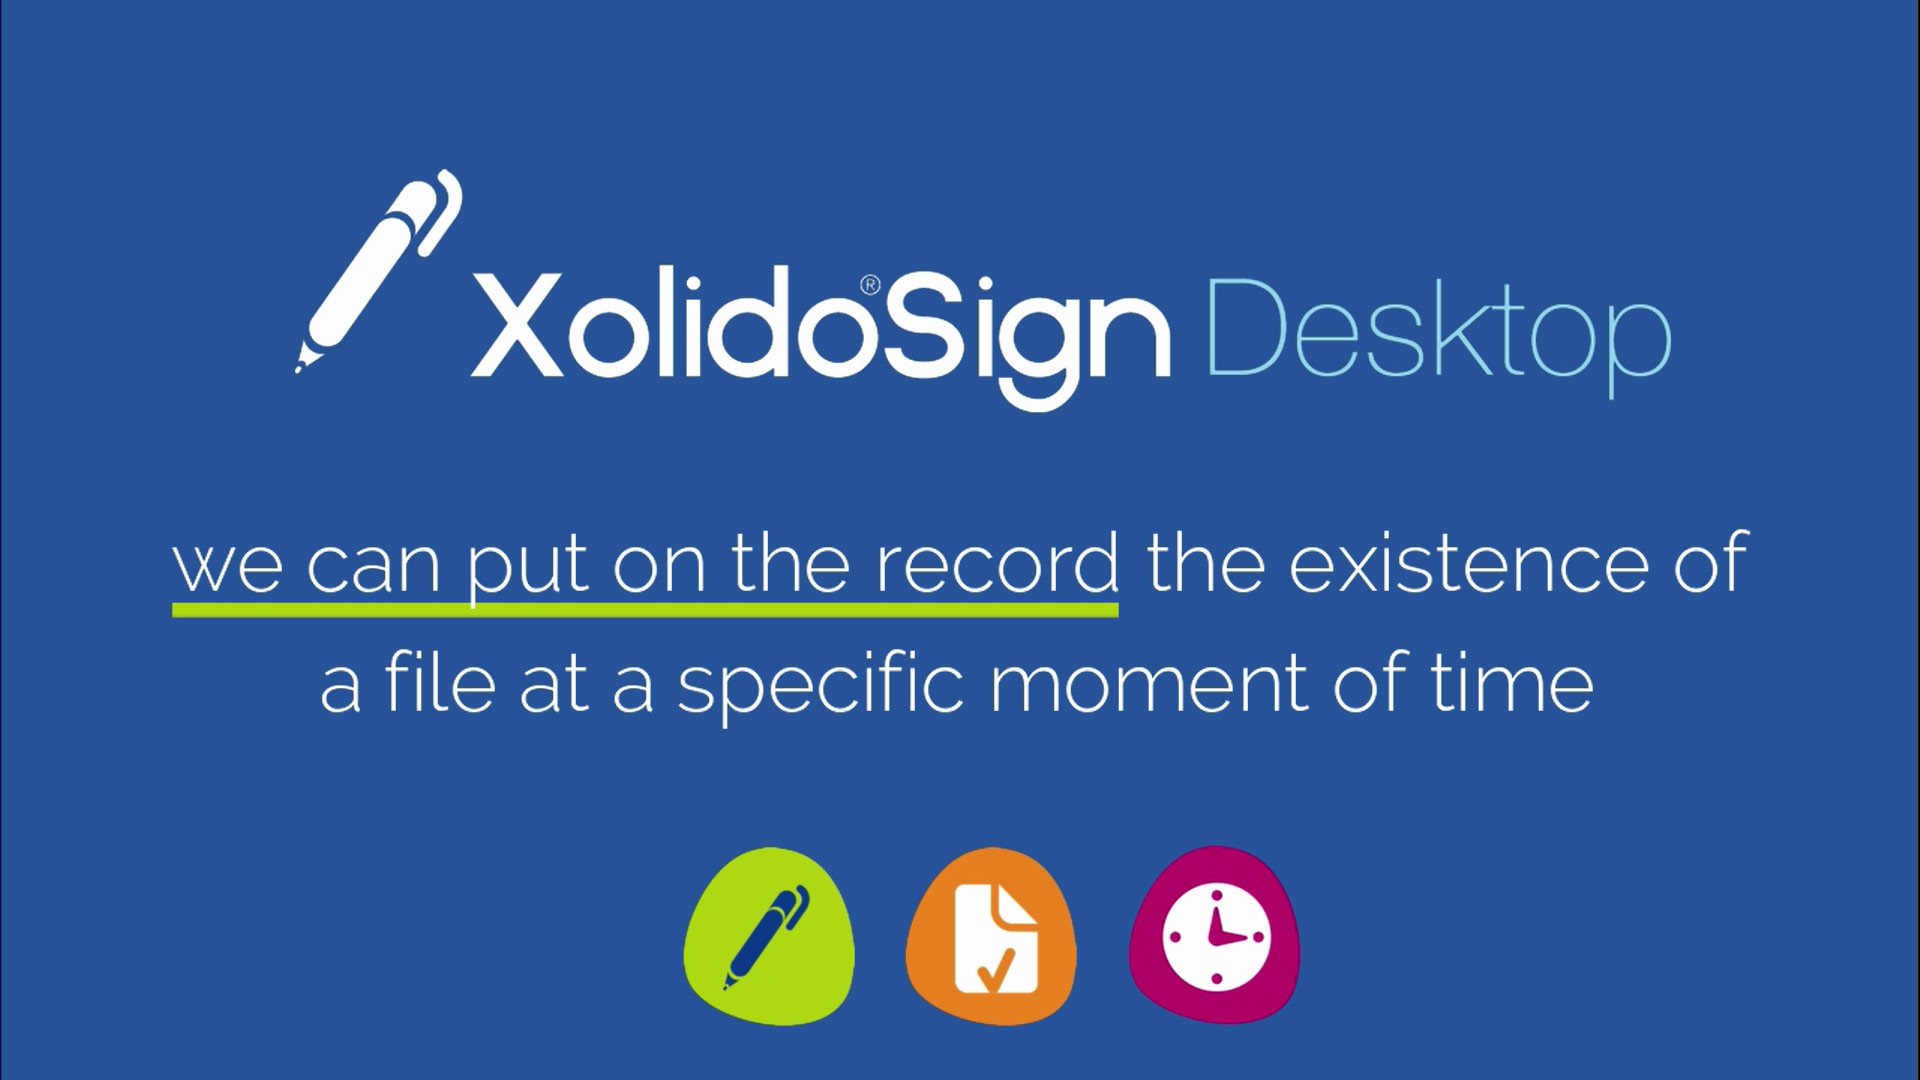 Recognized time-stamp with Xolido®Sign Desktop